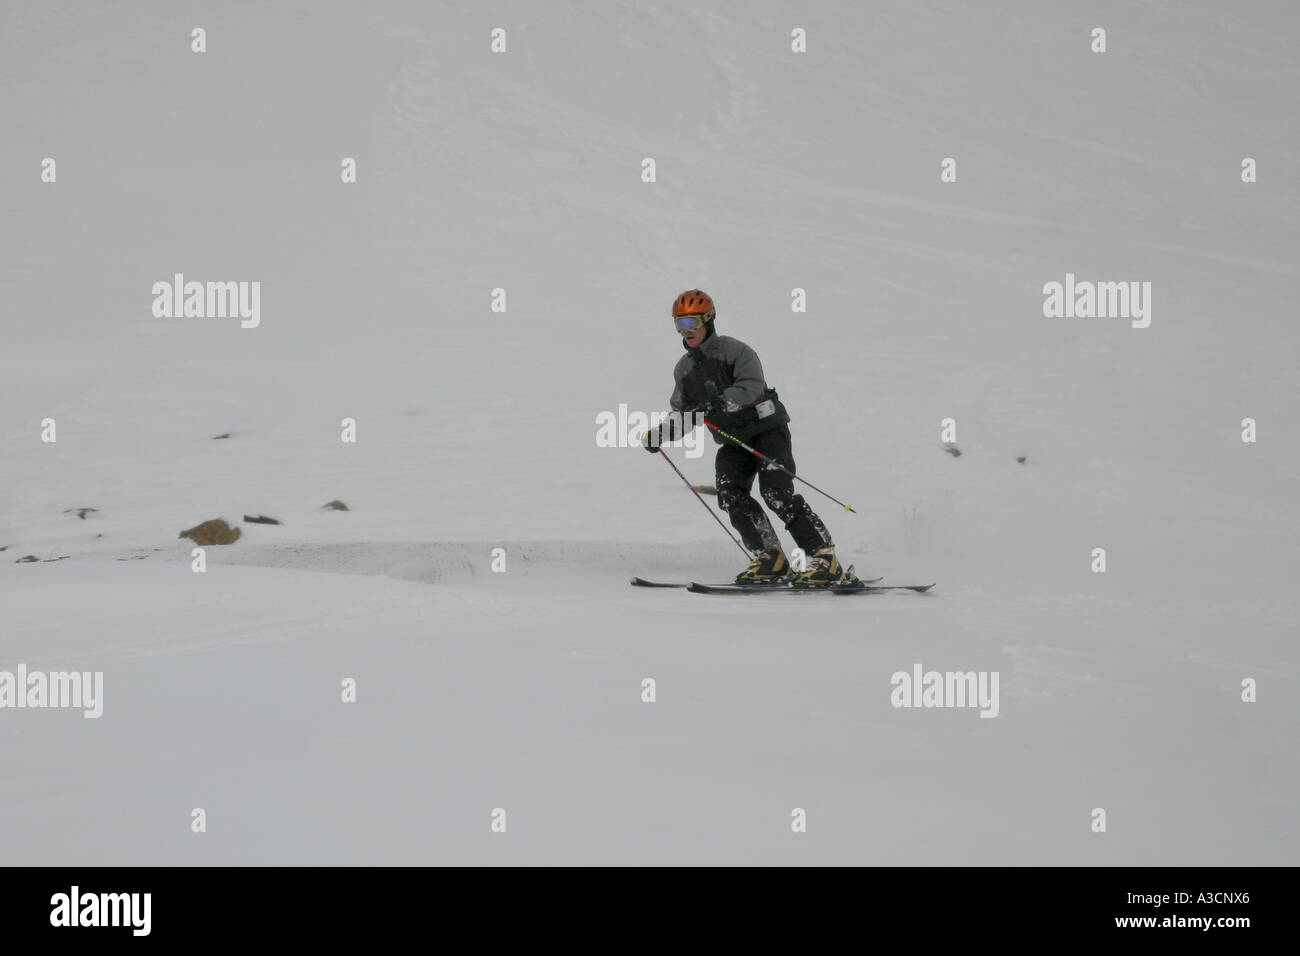 Skiing in the Canadian Rockies - Stock Image